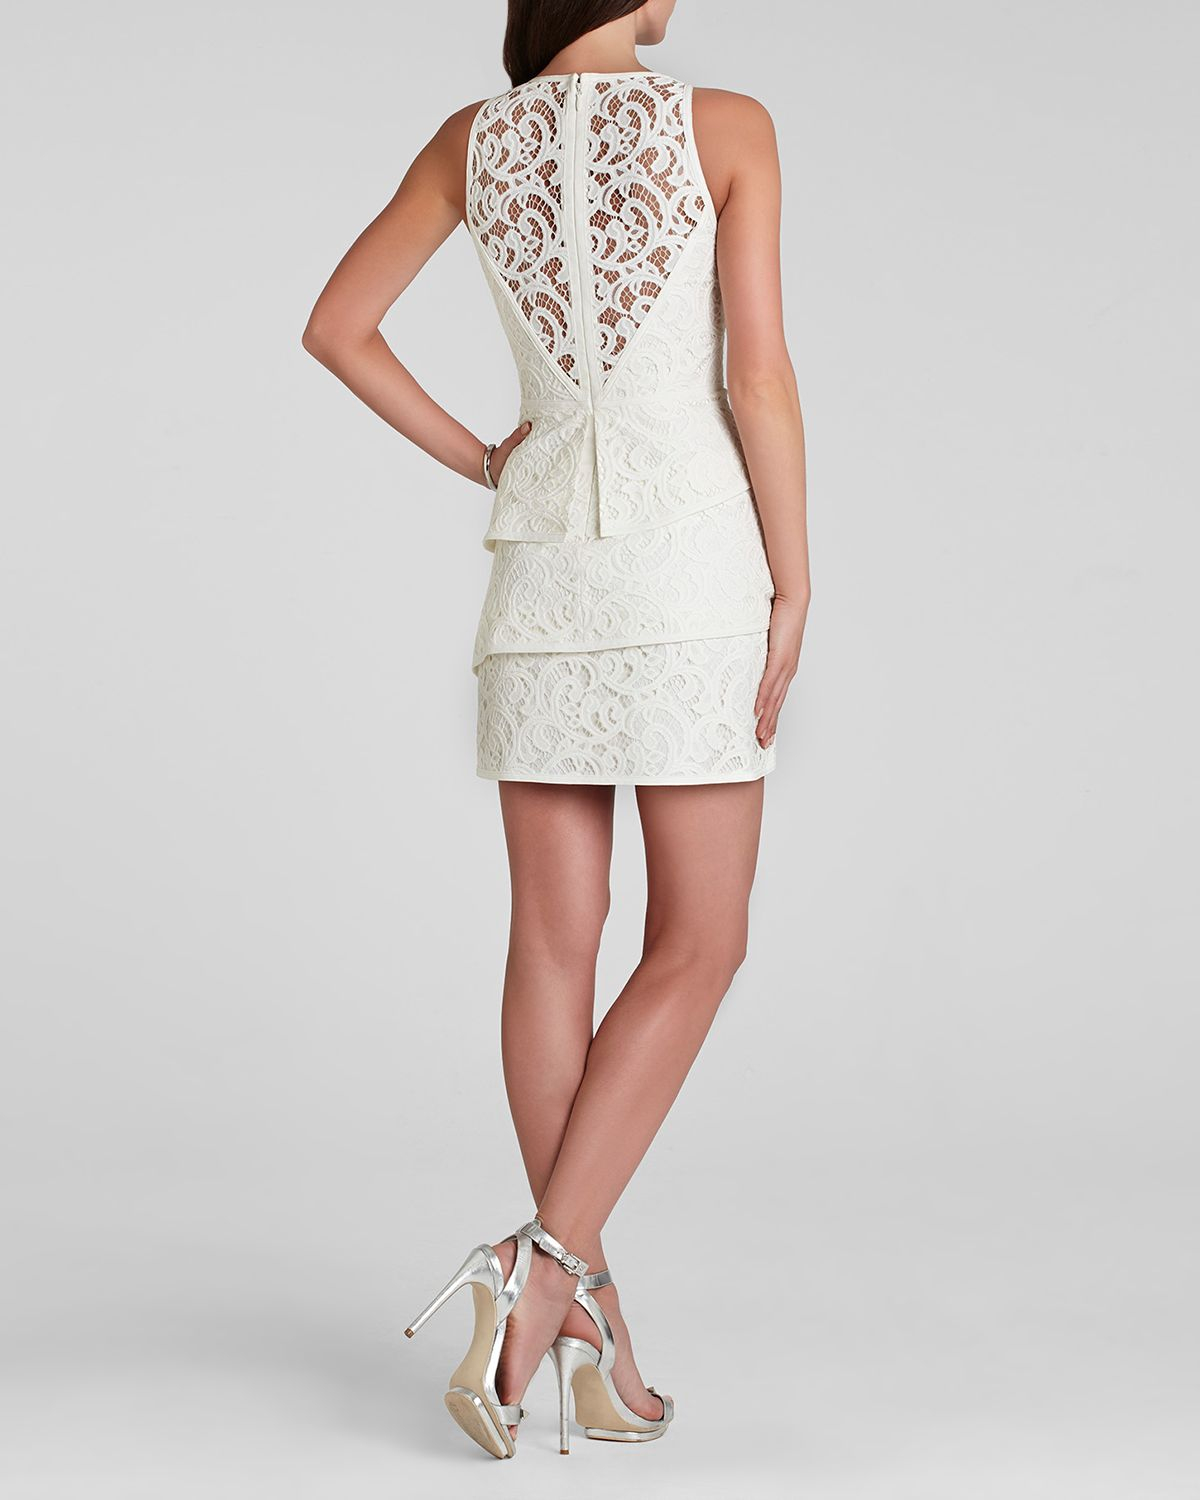 Bcbgmaxazria Bcbg Max Azria Dress Hanah Sleeveless Lace